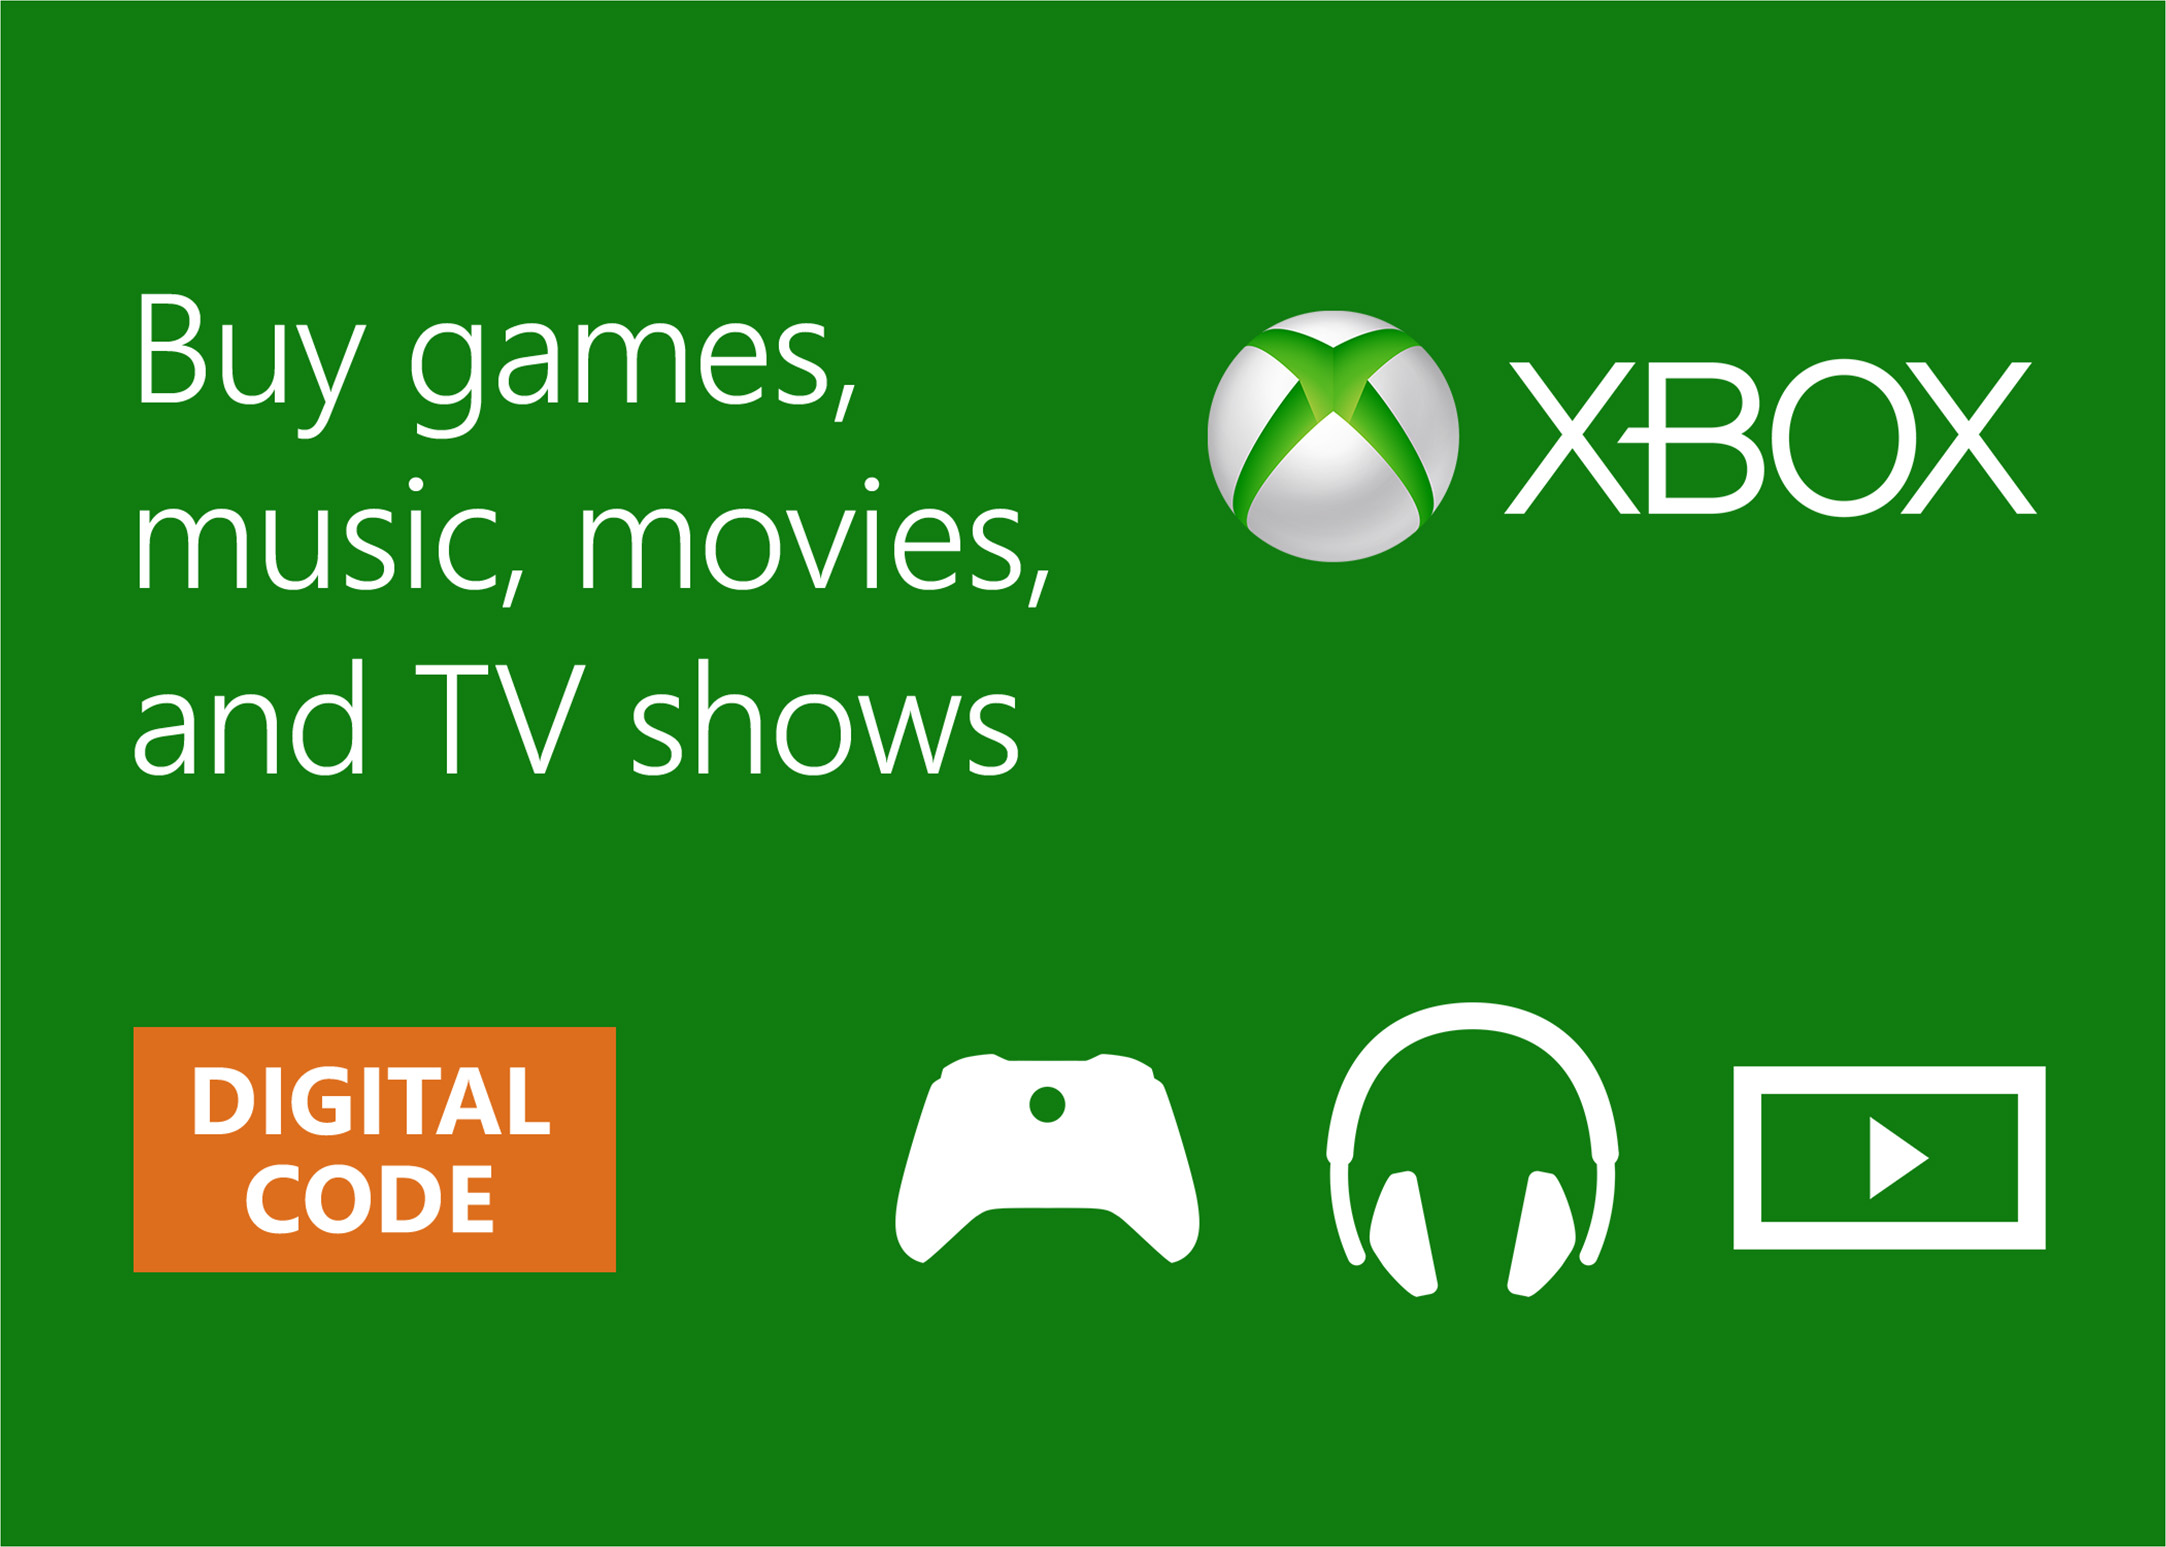 Xbox Digital Gift Card: $1.00